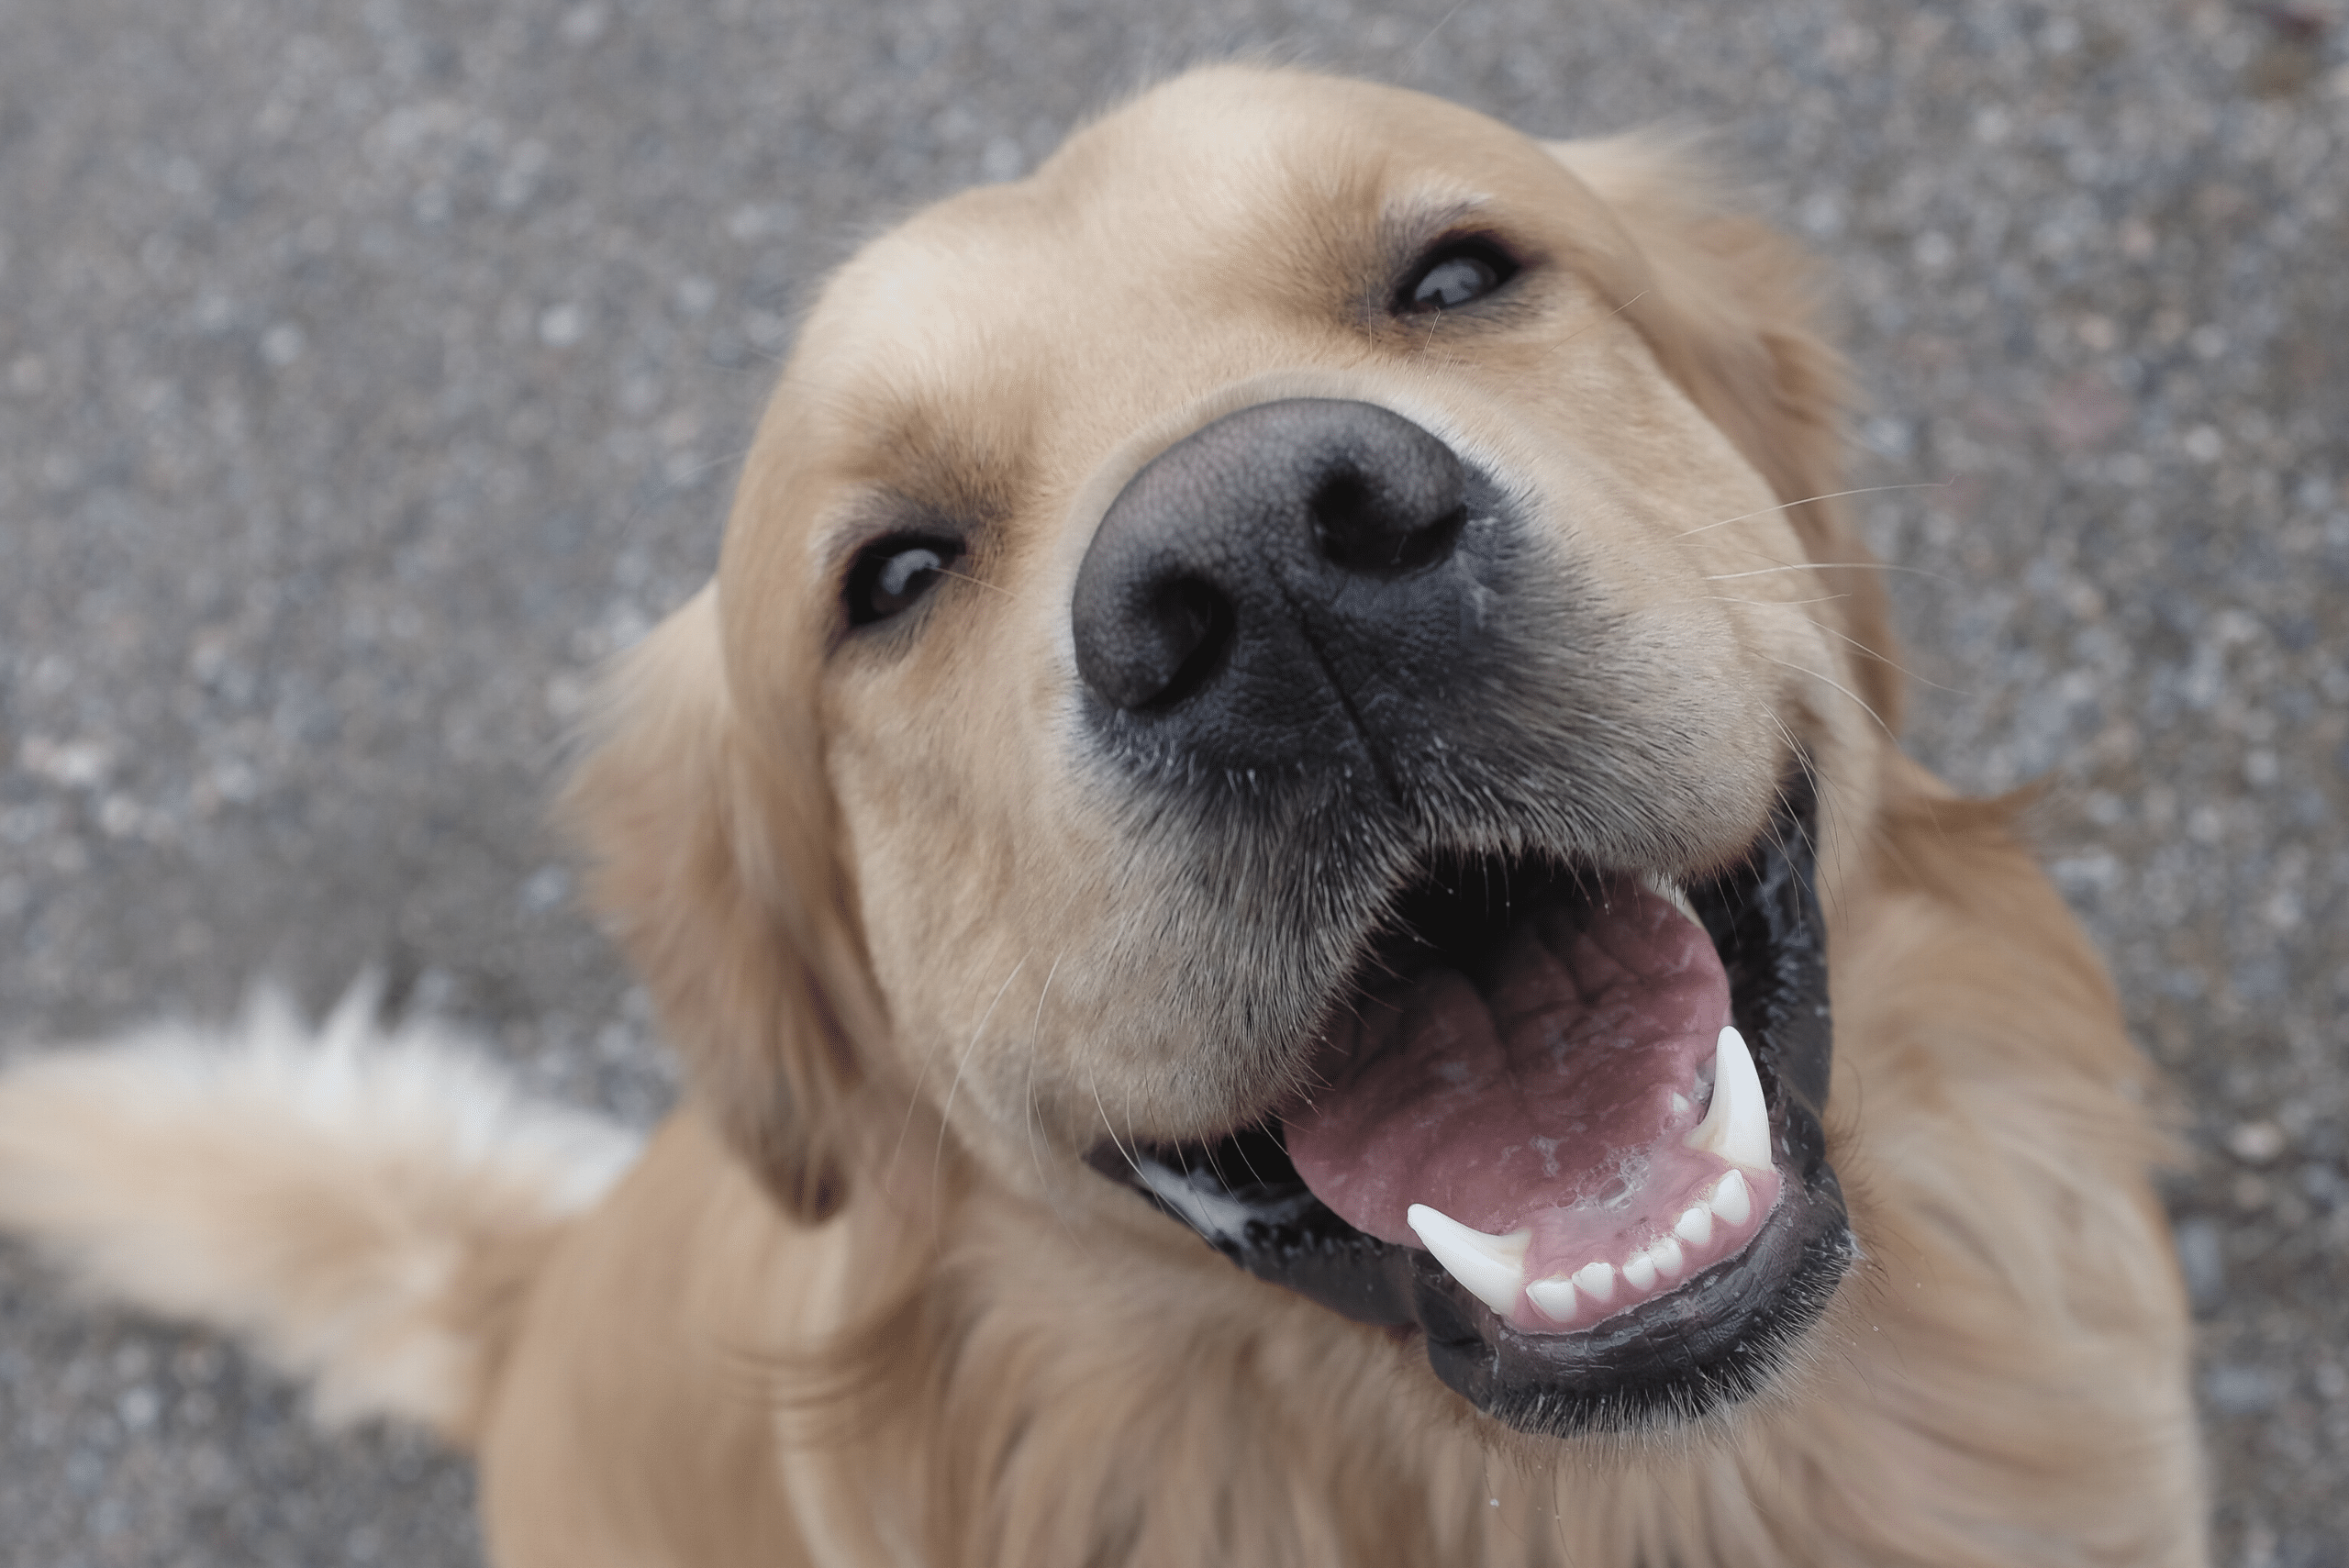 How Many Dogs Are Stolen in the UK Per Year?